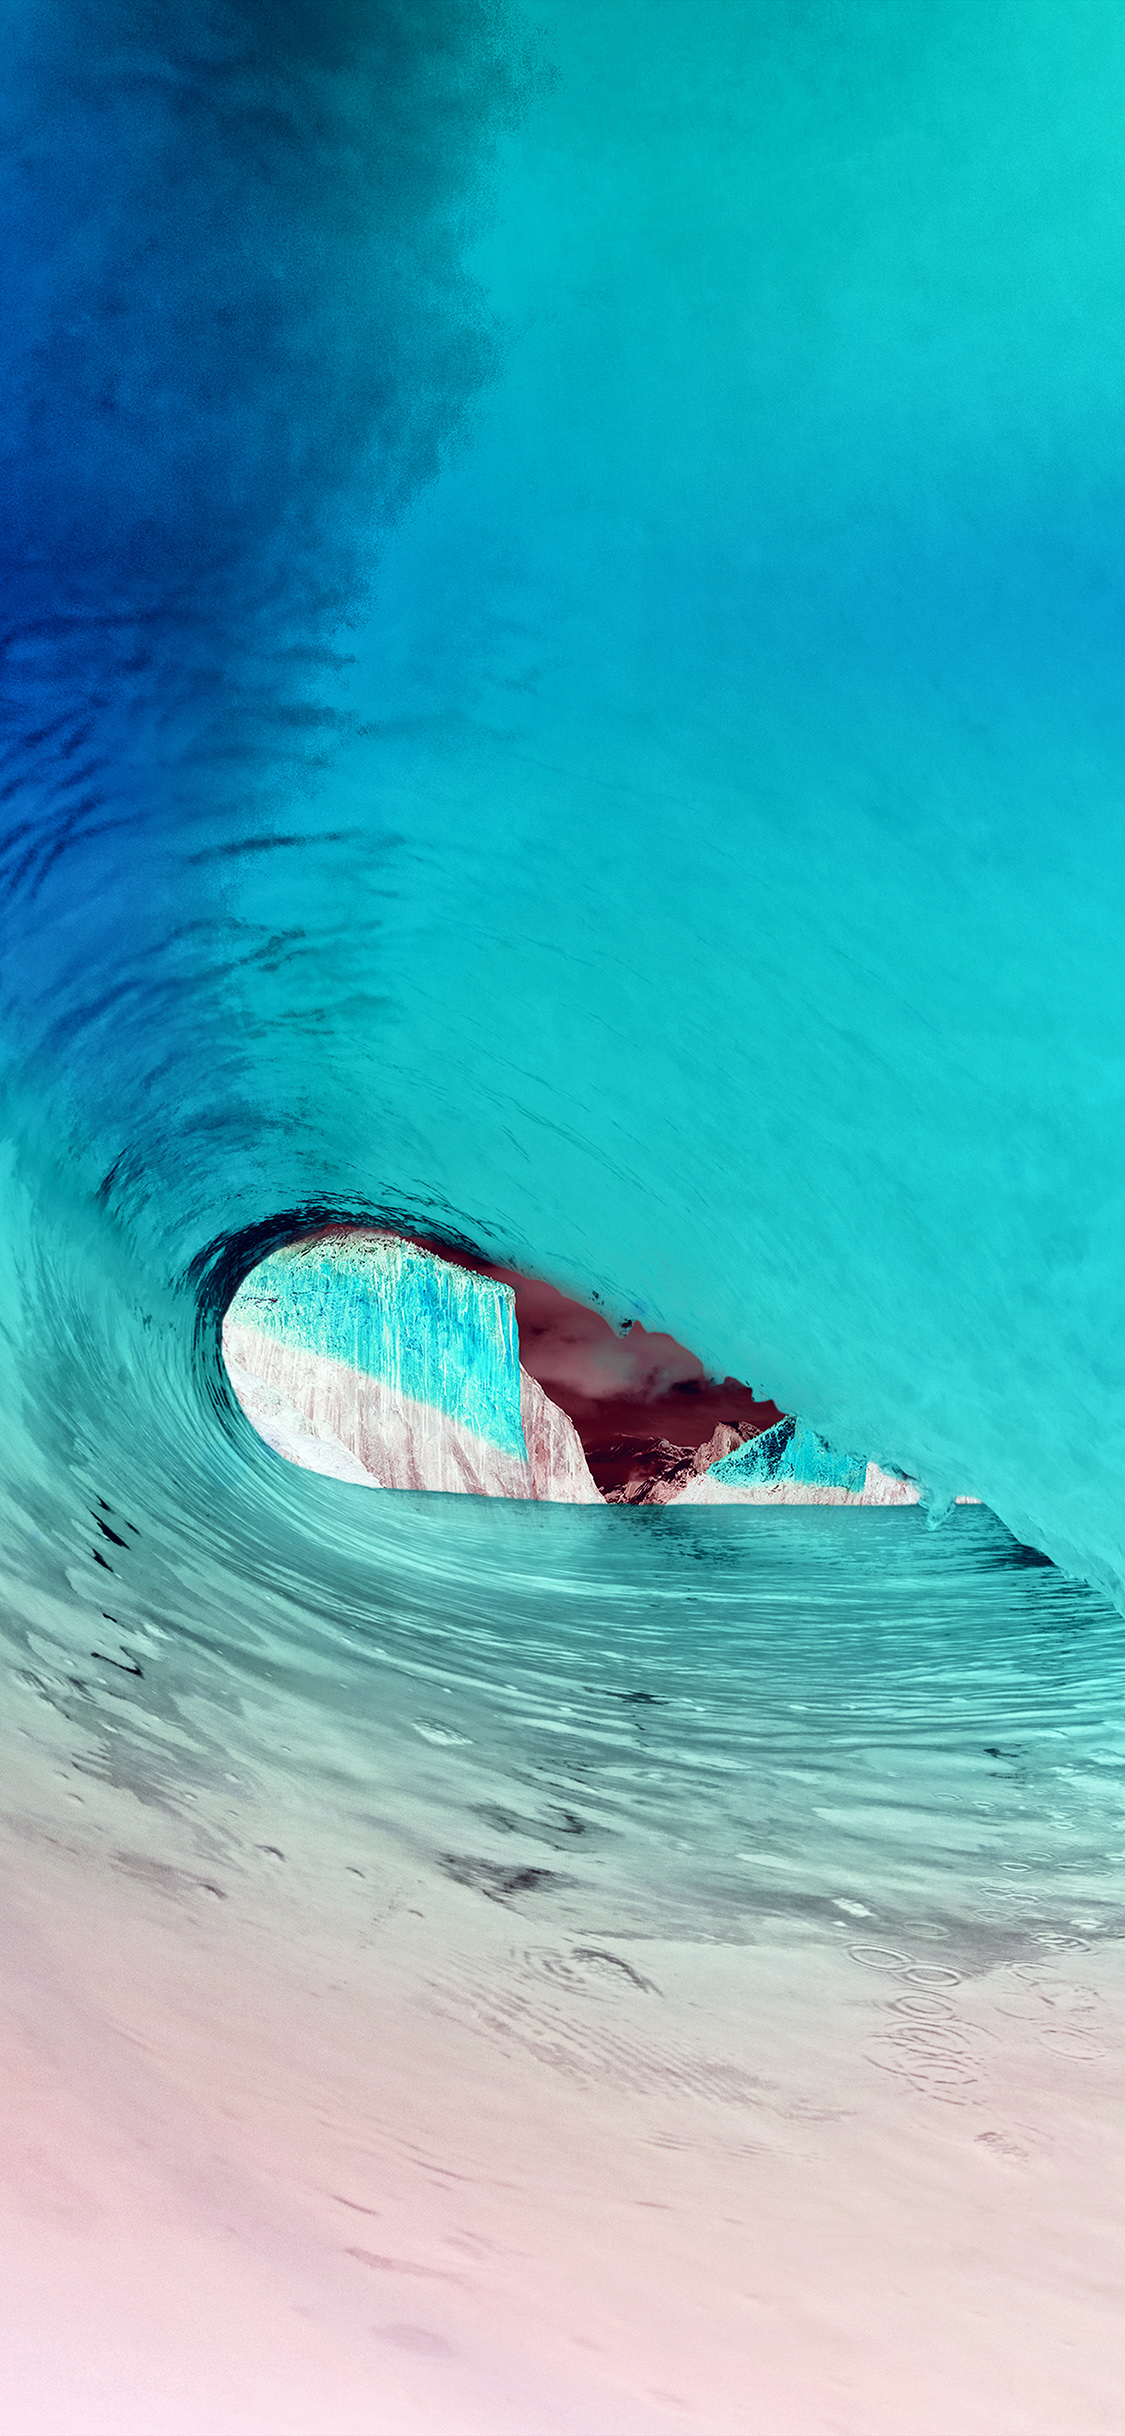 iPhonexpapers.com-Apple-iPhone-wallpaper-mw07-apple-osx-yosemite-wave-sea-blue